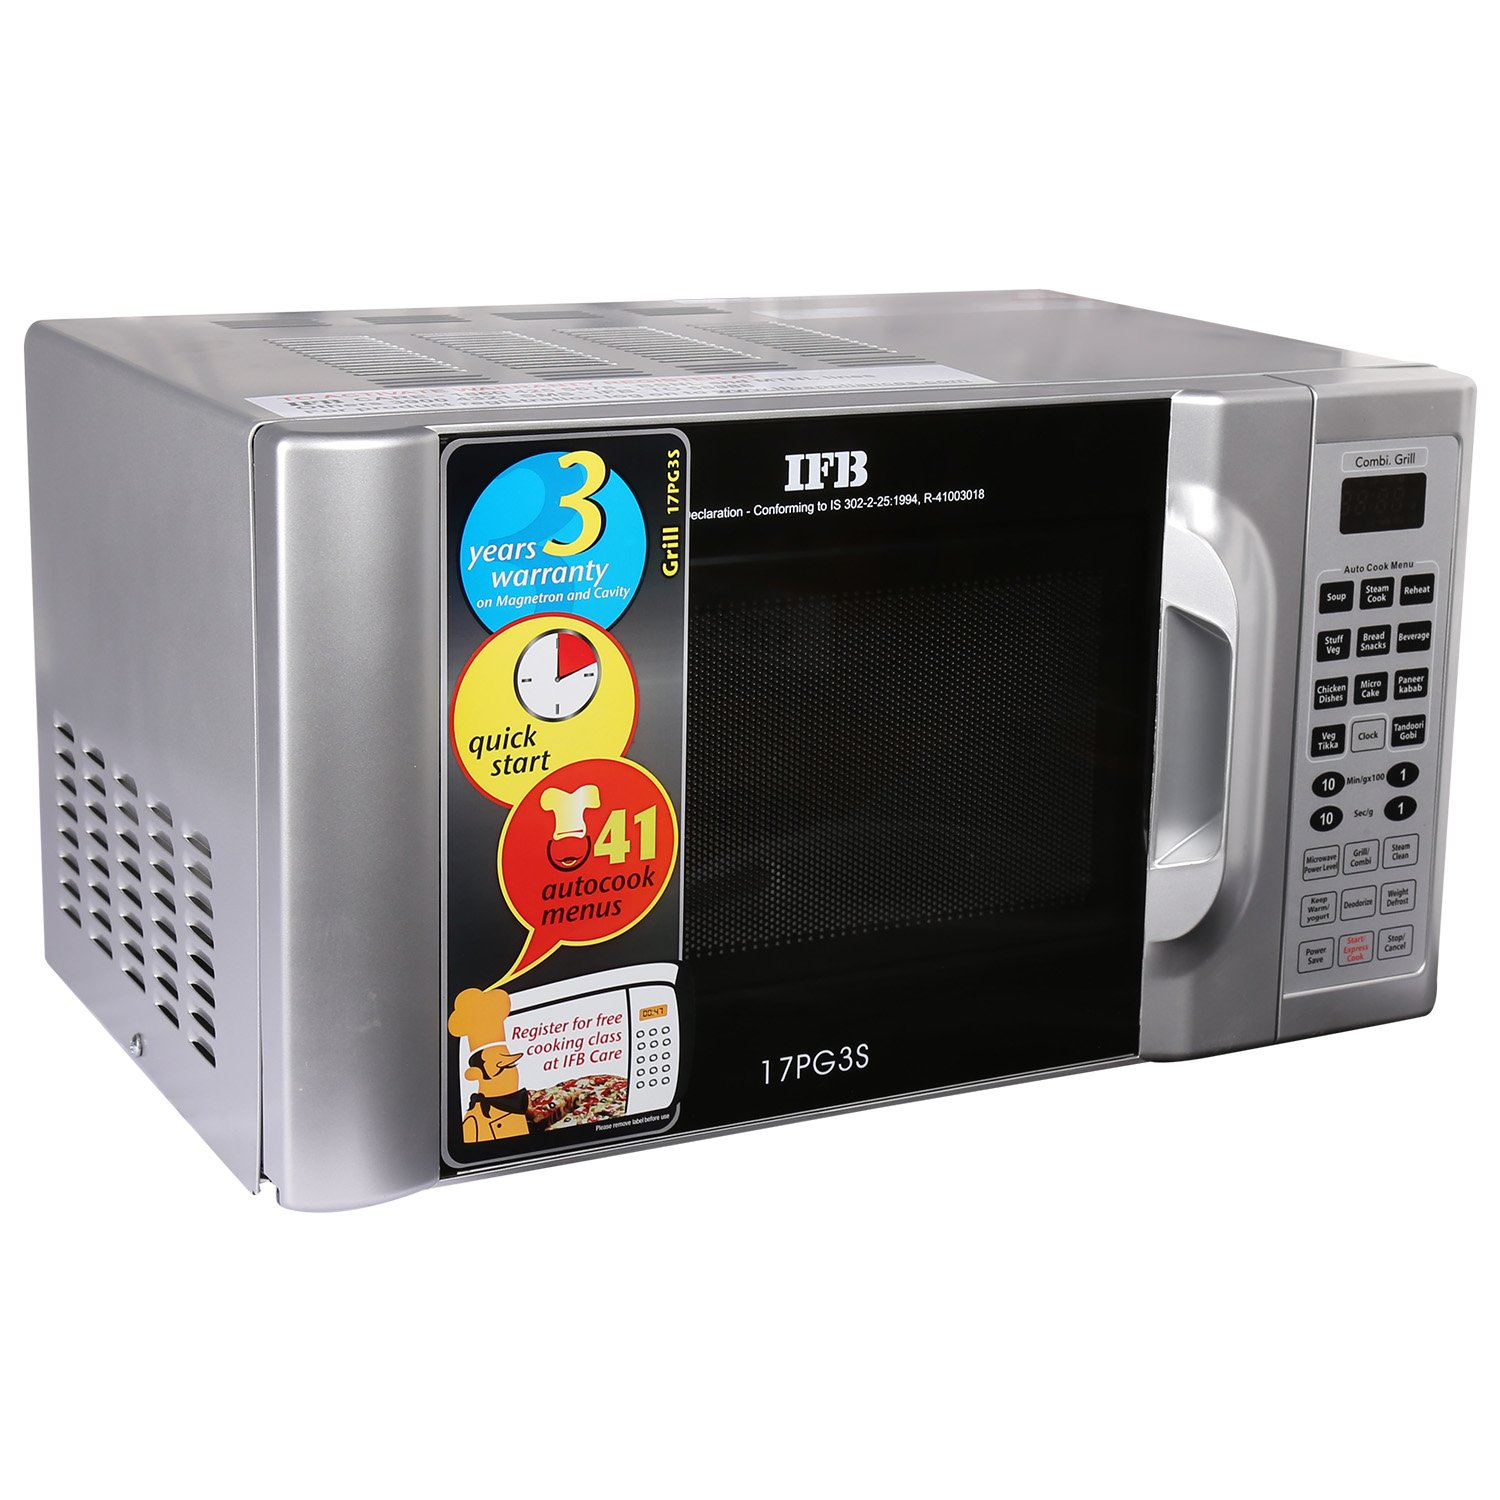 IFB 17 L Grill Microwave Oven 17PG3S Metallic Silver Amazon Home & Kitchen